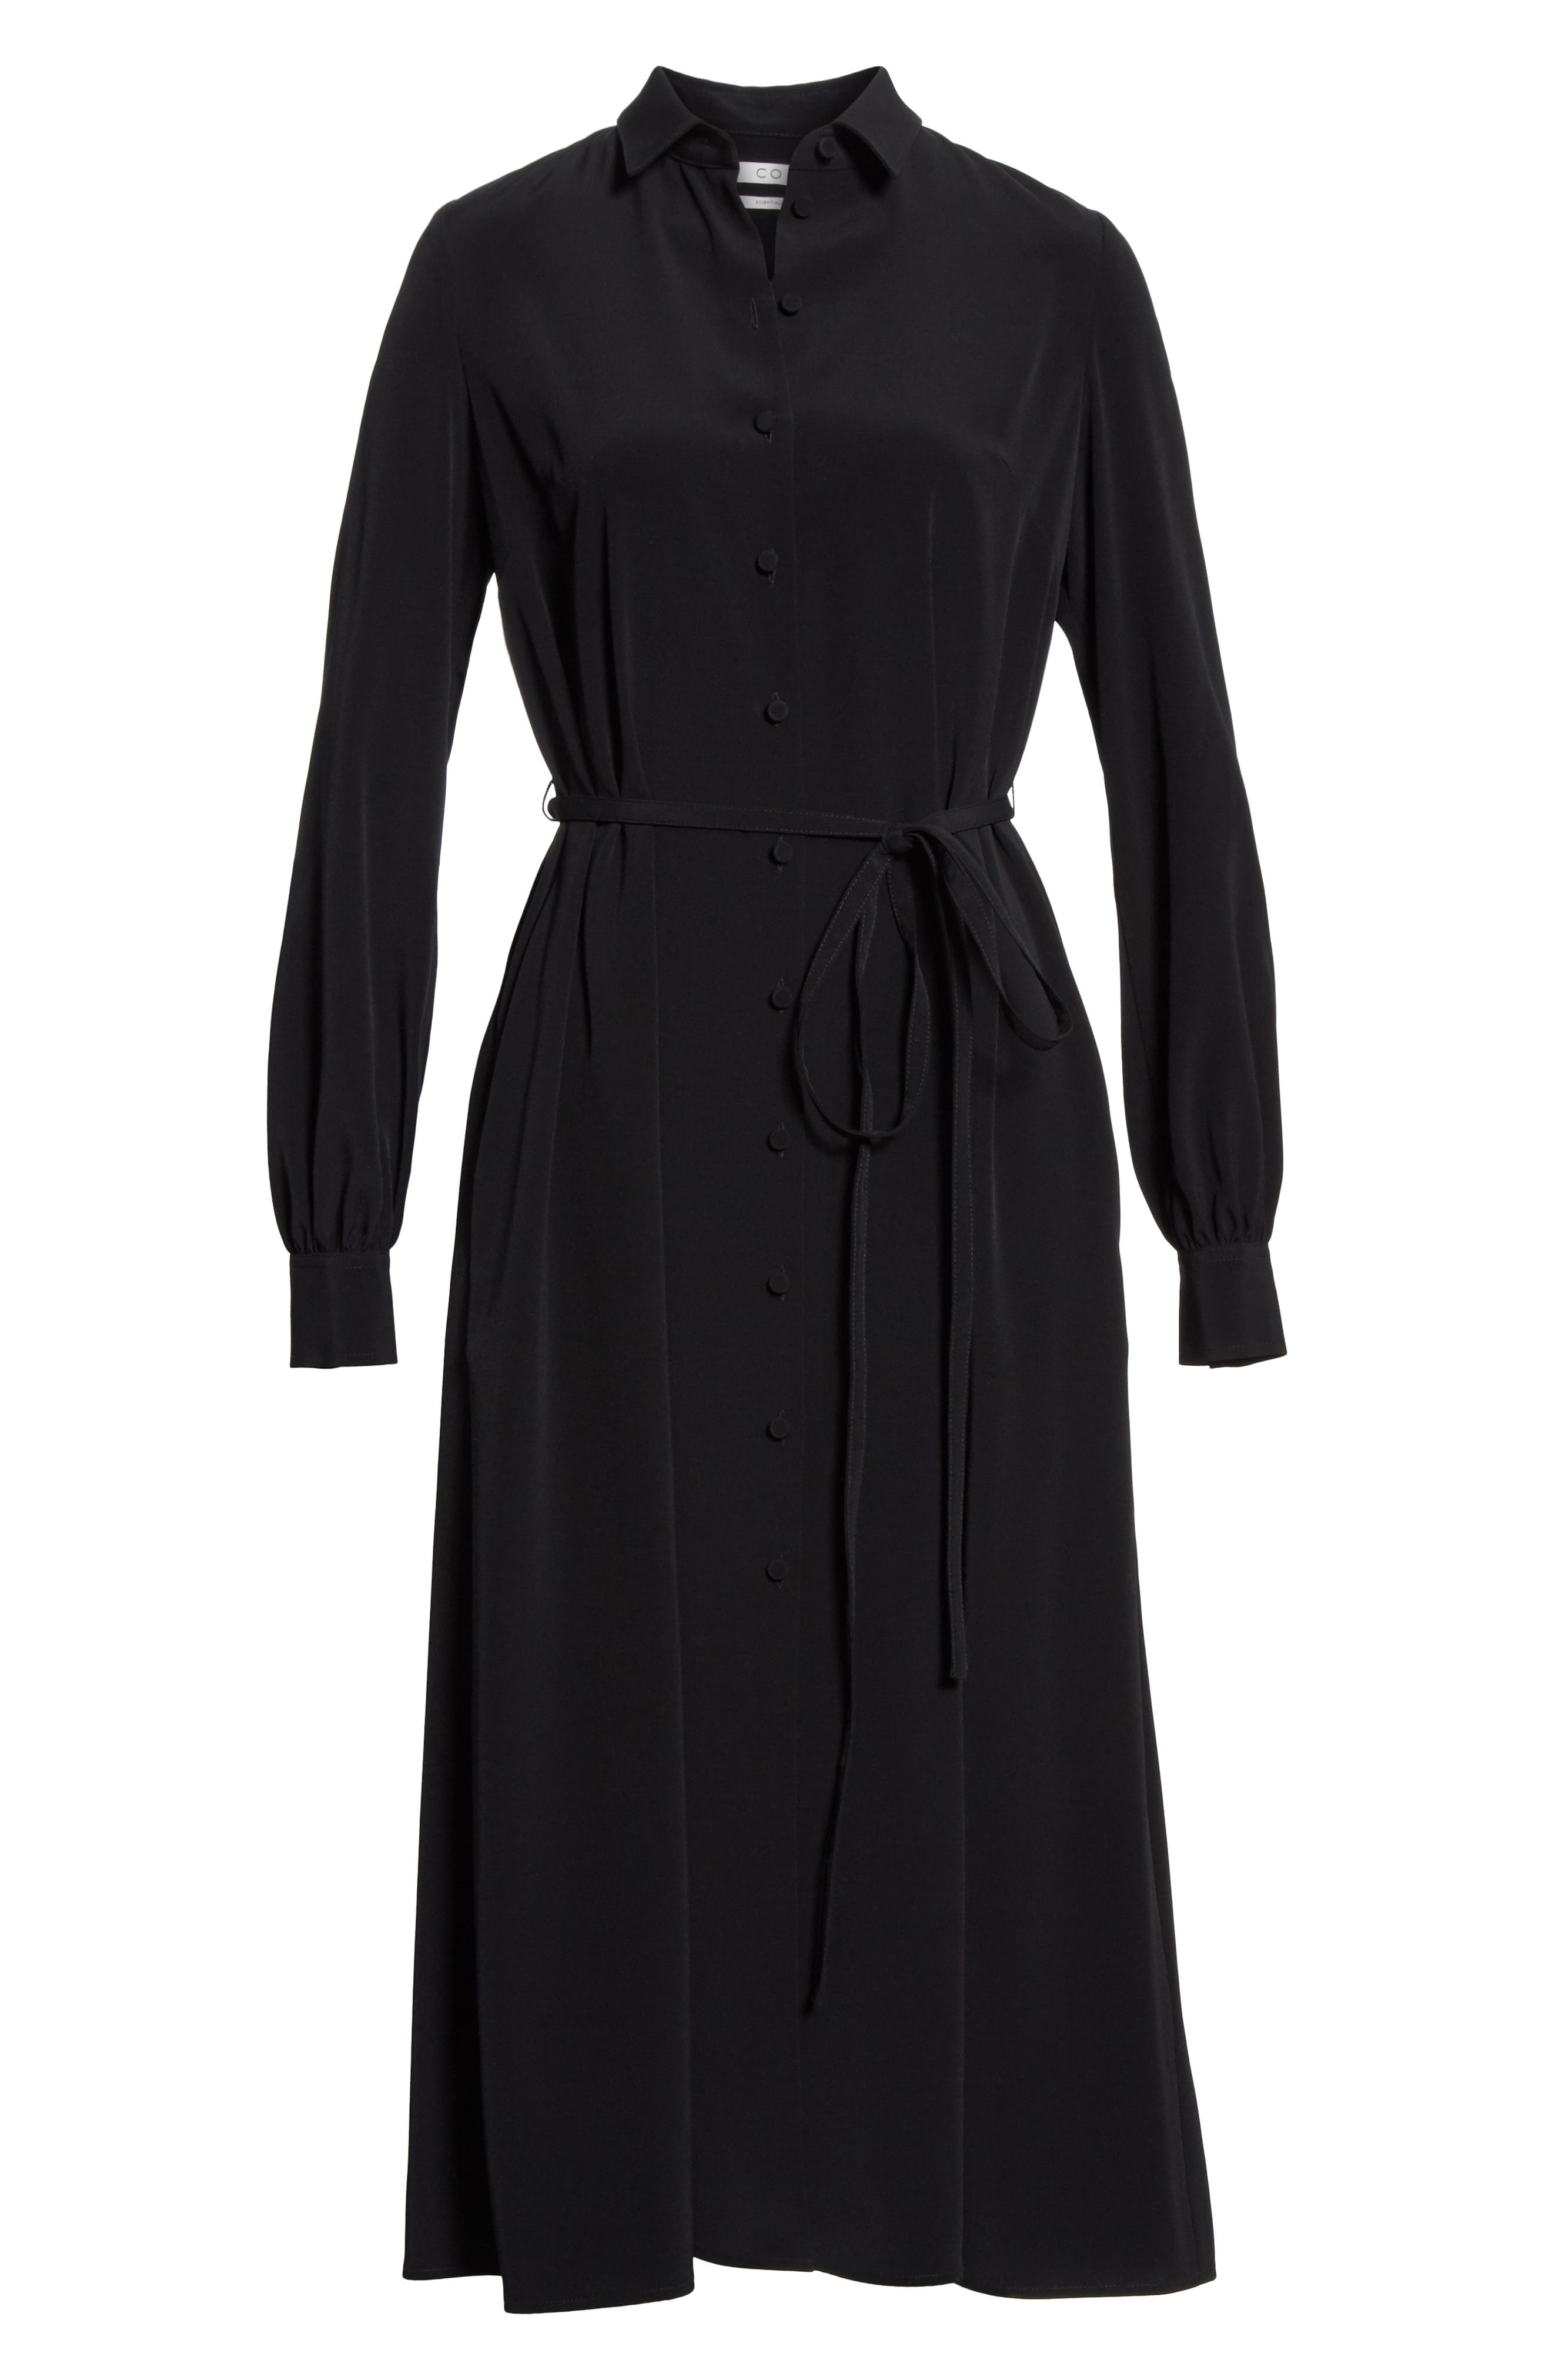 CO,                             Belted Shirtdress,                             Alternate thumbnail 6, color,                             BLACK